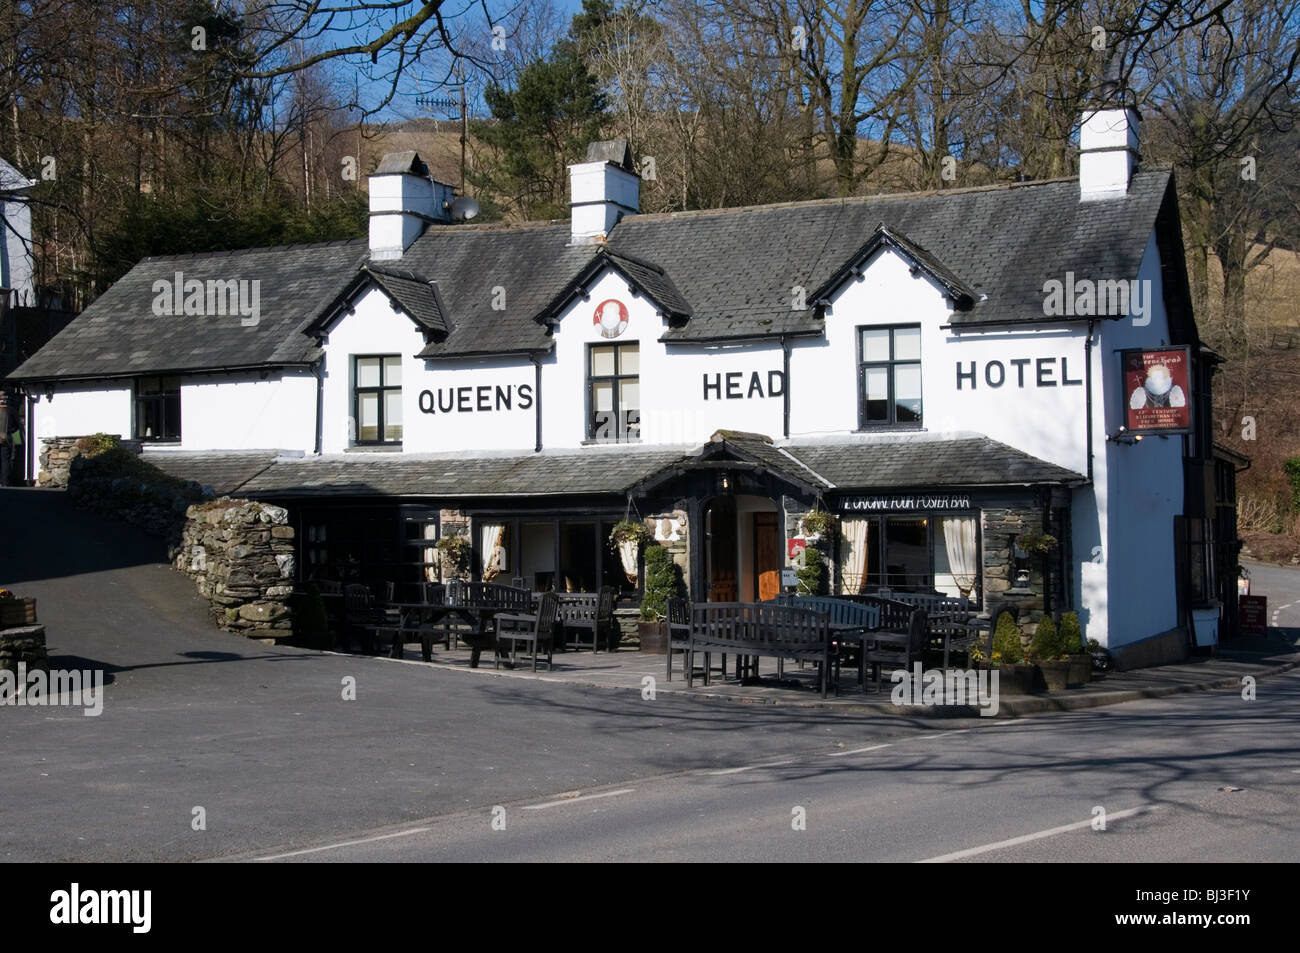 The Queen's Head pub at Troutbeck in the English Lake District - Stock Image